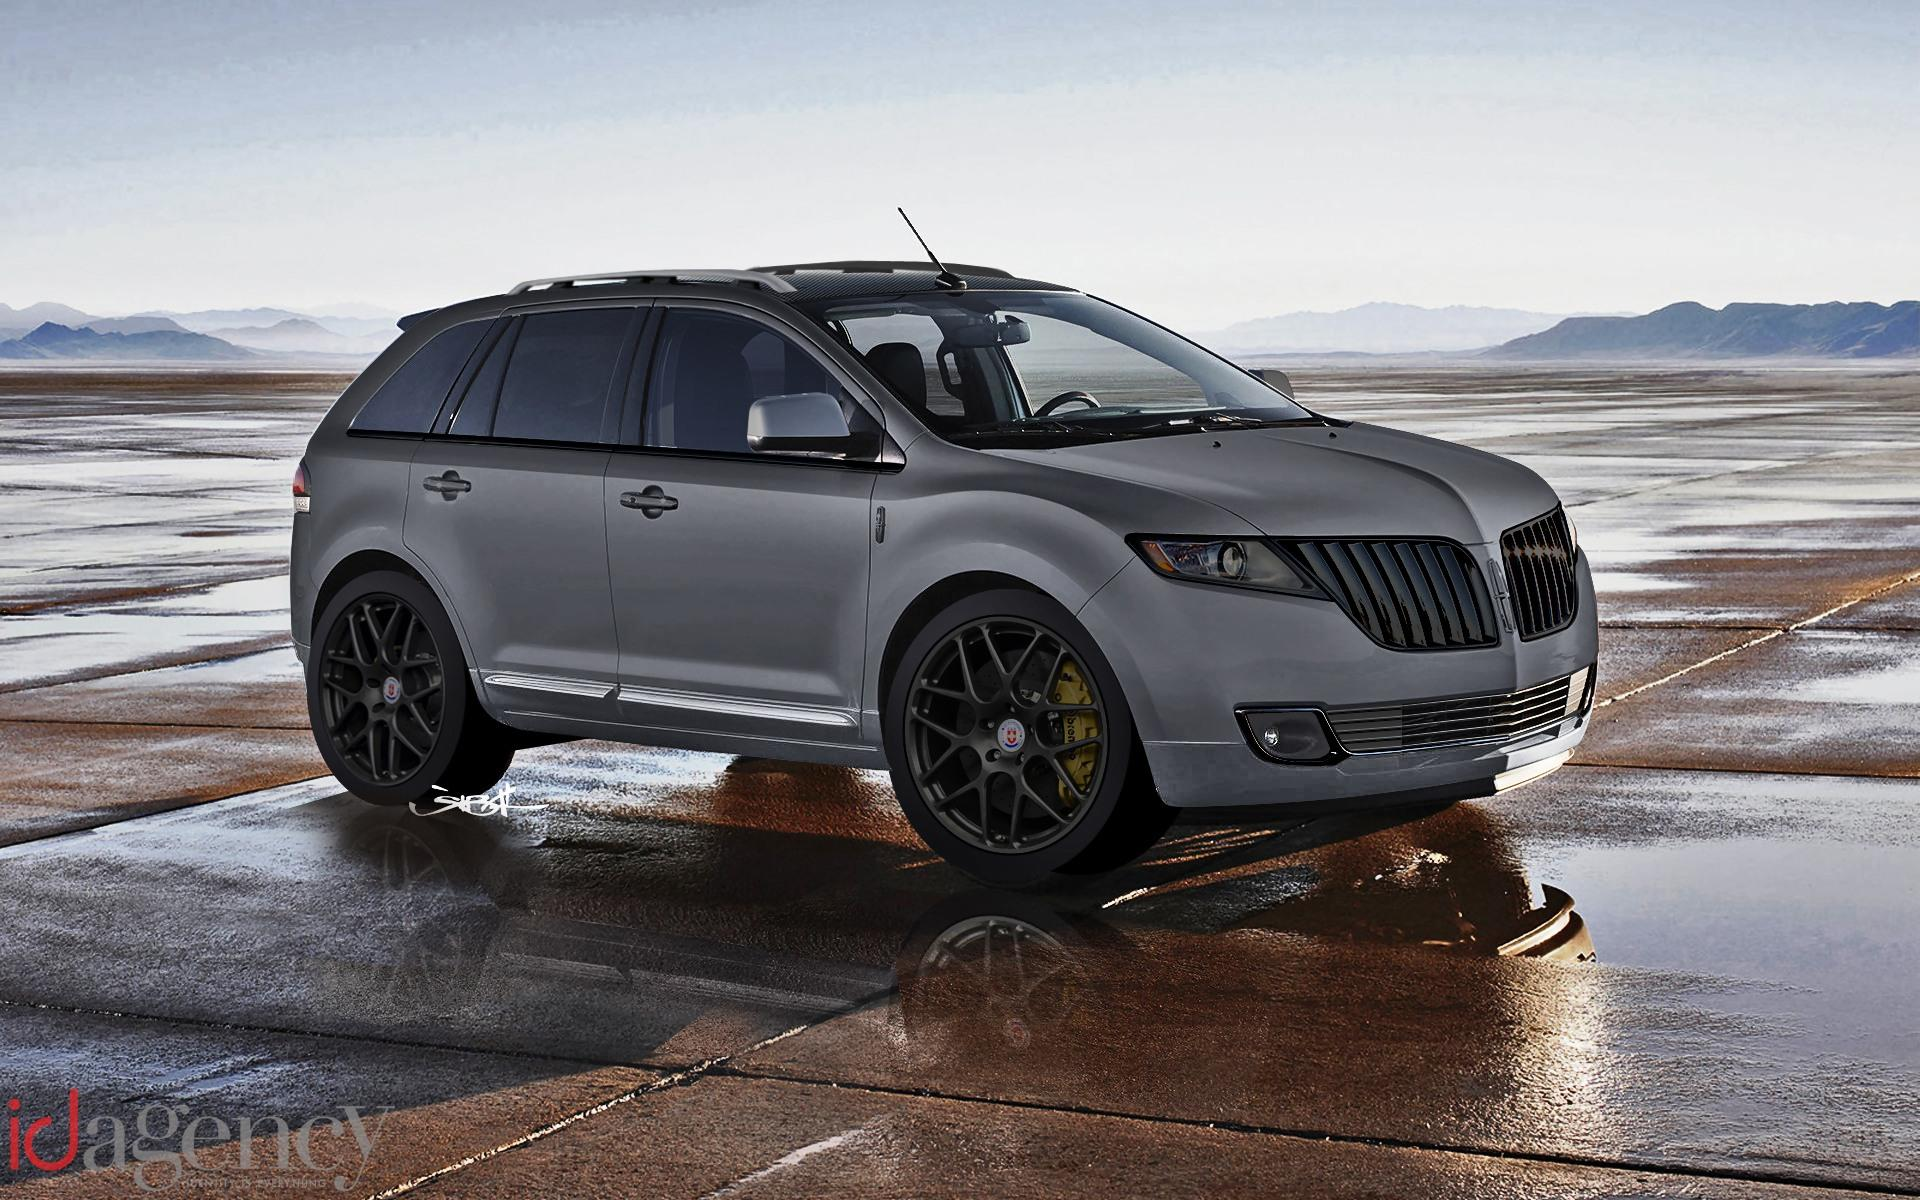 Lincoln MKX by ID Agency pictures and wallpaper